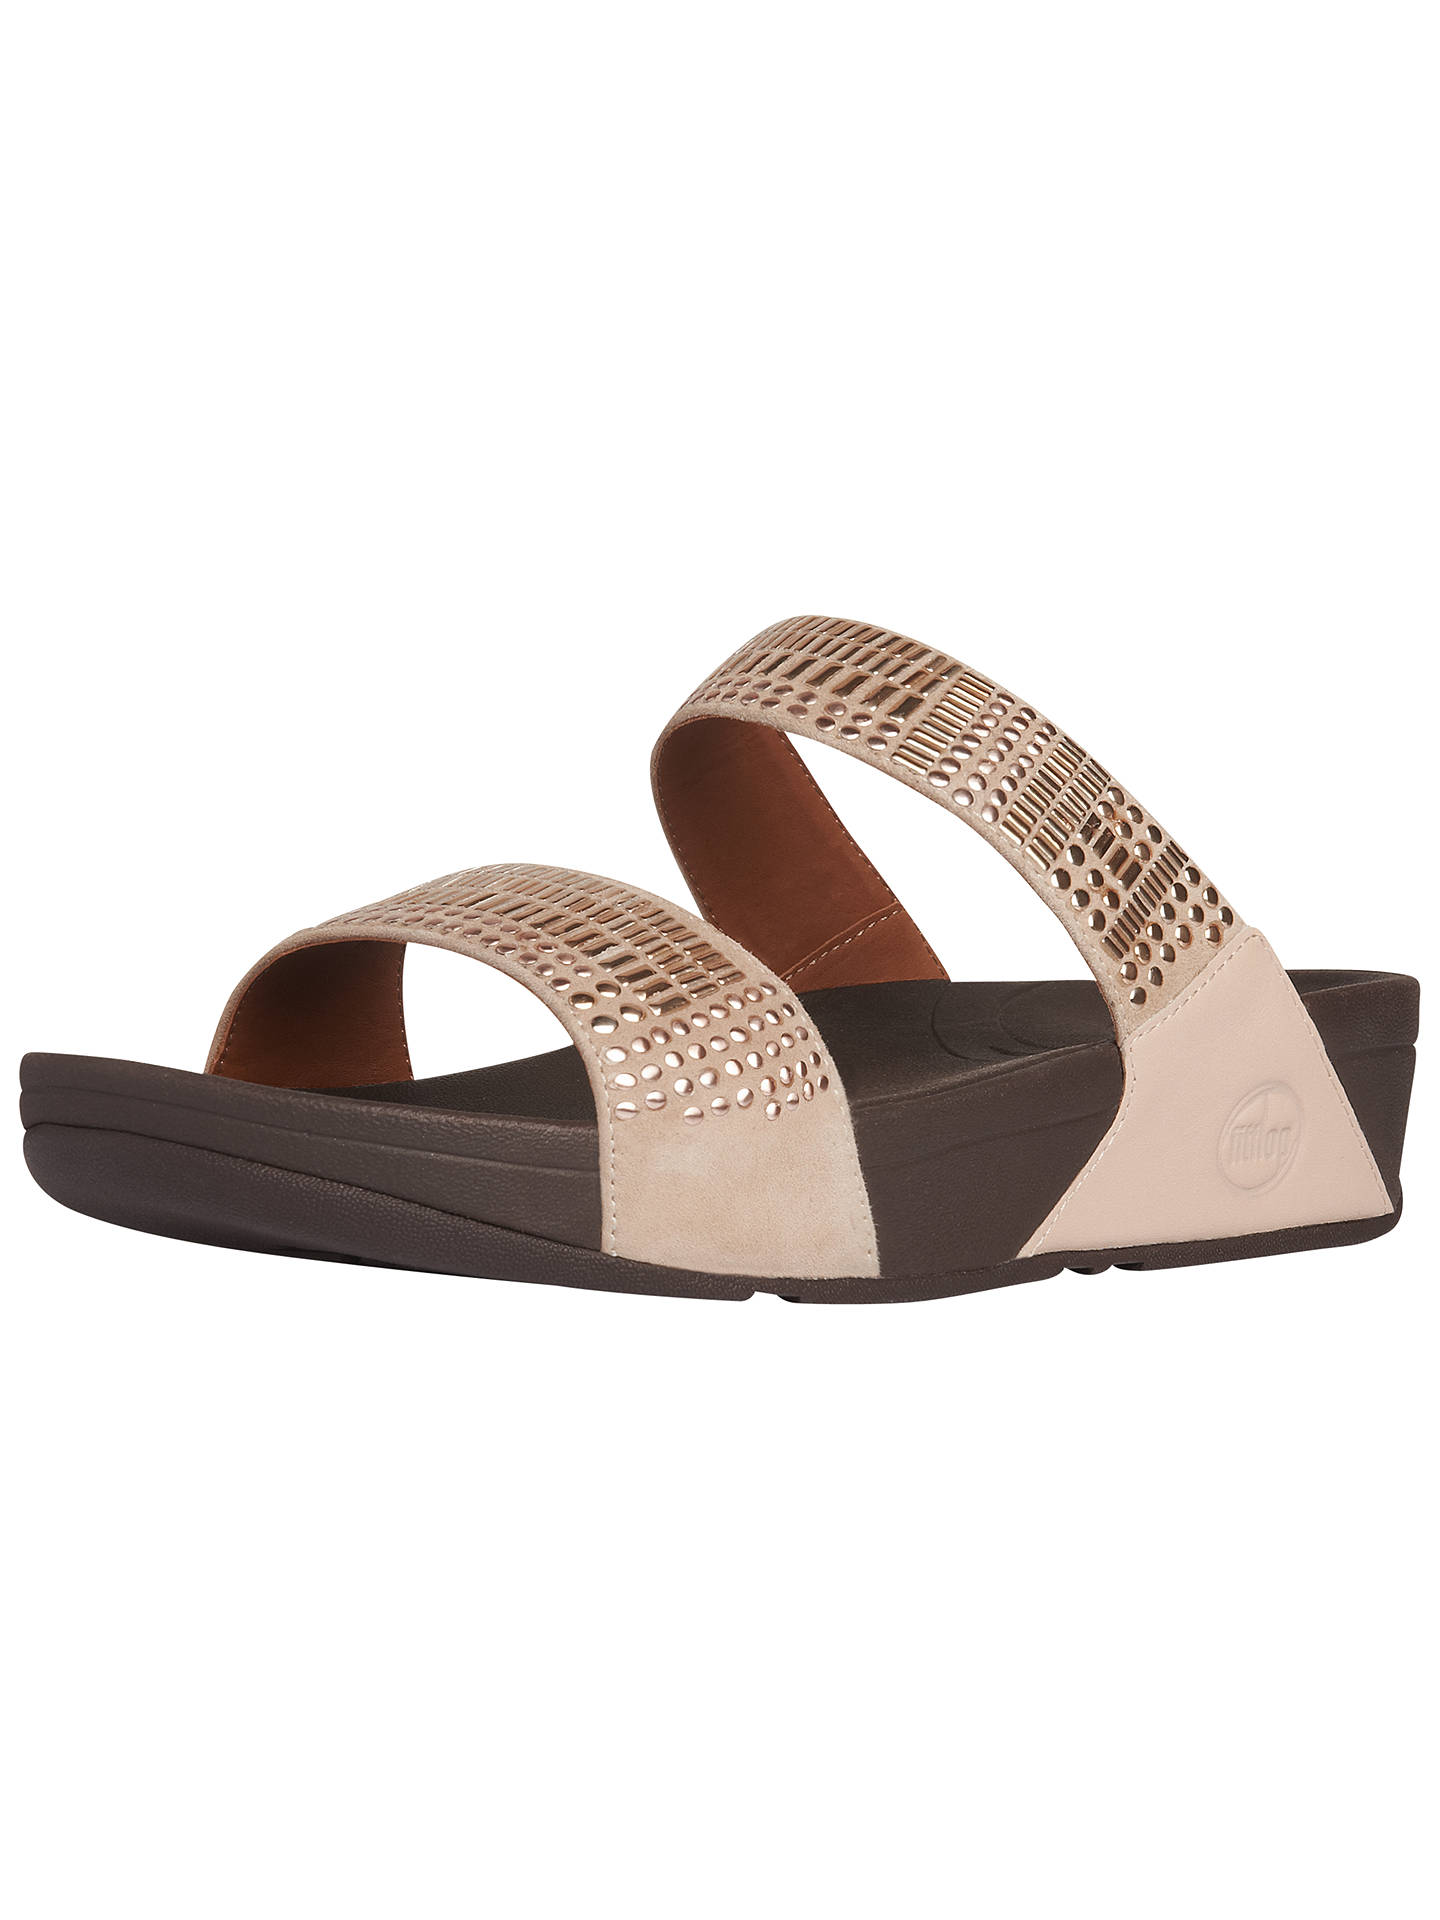 bfd5a1d65 Buy FitFlop Aztek Chada Slide Suede Sandals